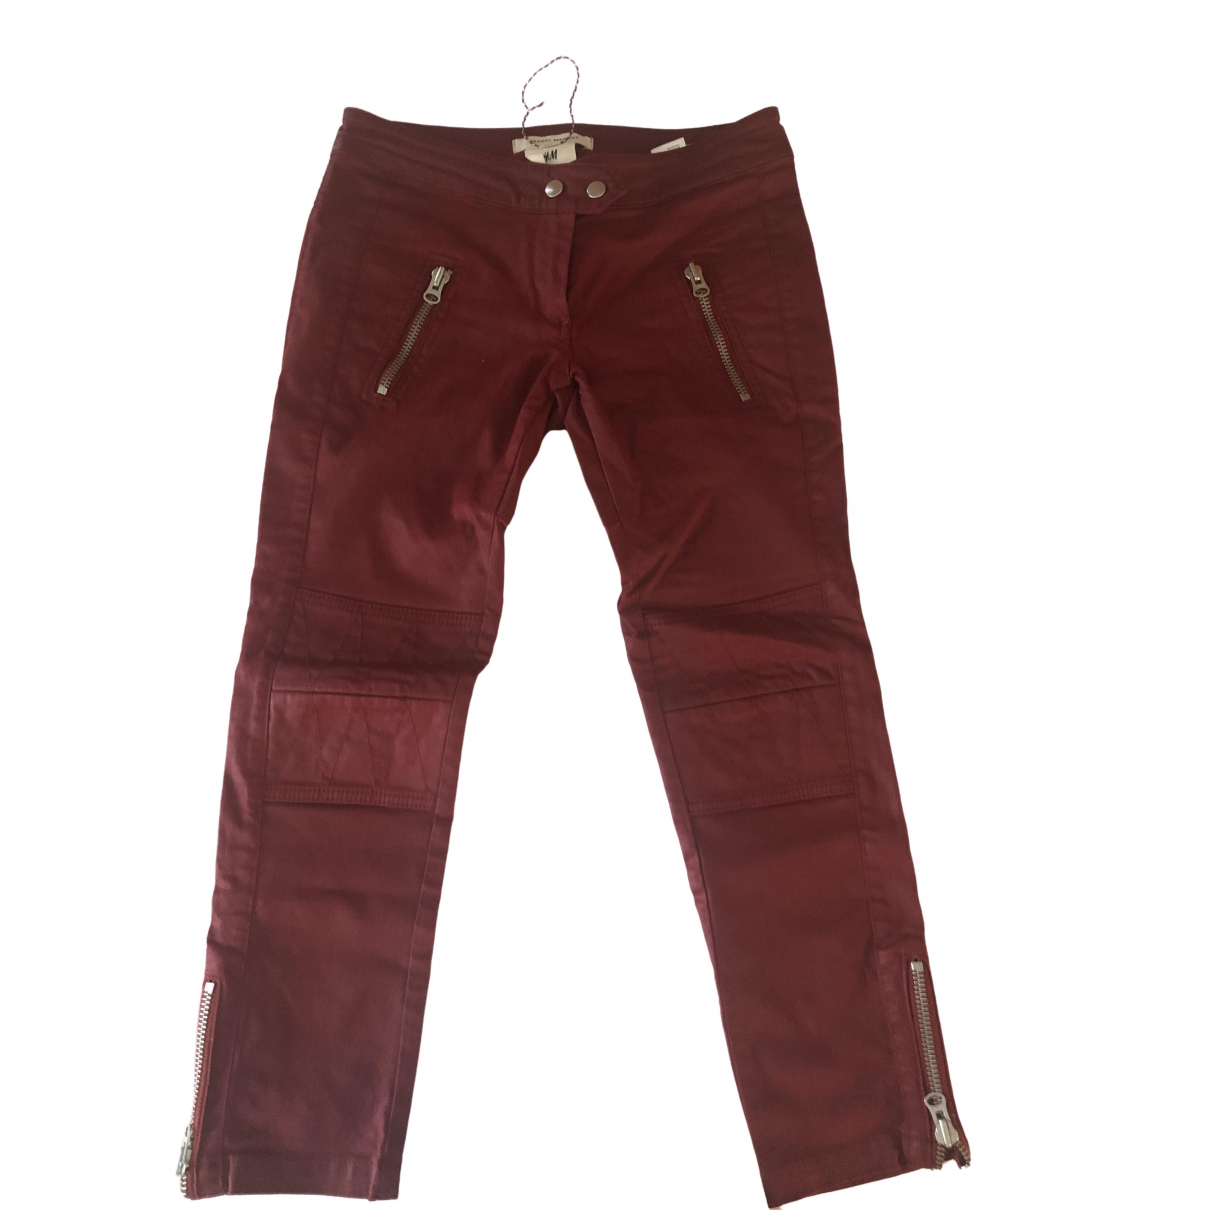 Isabel Marant Pour H&m \N Red Denim - Jeans Trousers for Women S International